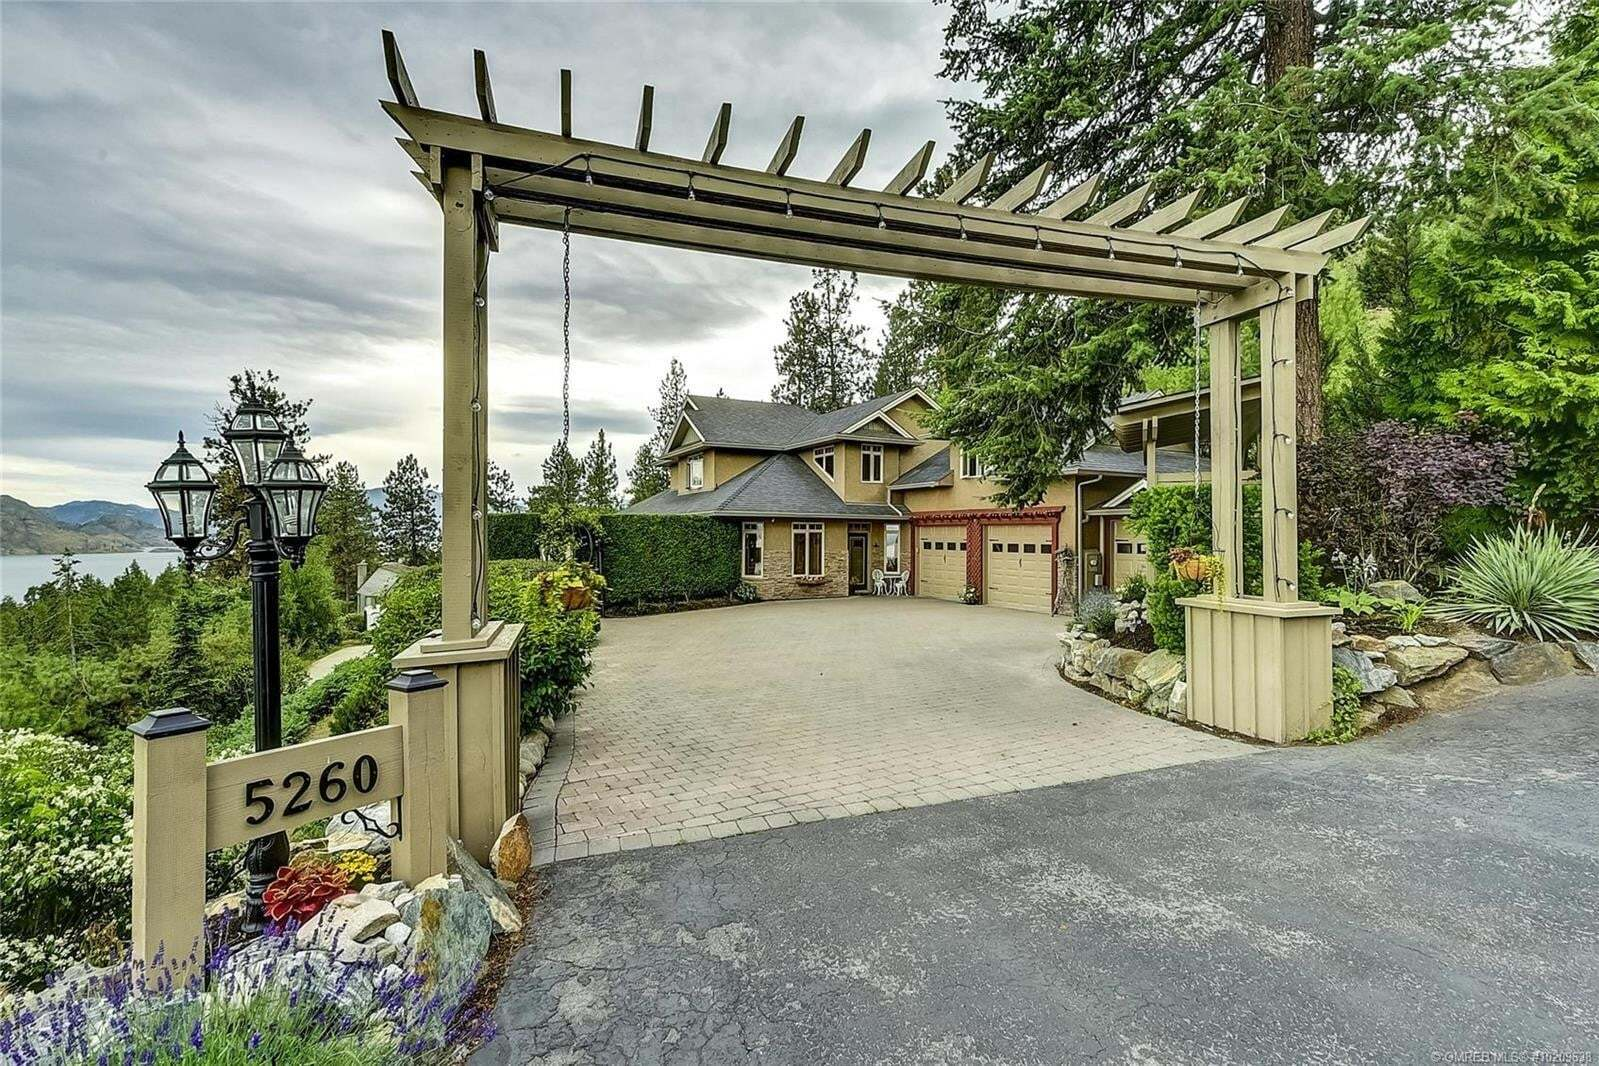 House for sale at 5260 Trepanier Bench Rd Peachland British Columbia - MLS: 10209638